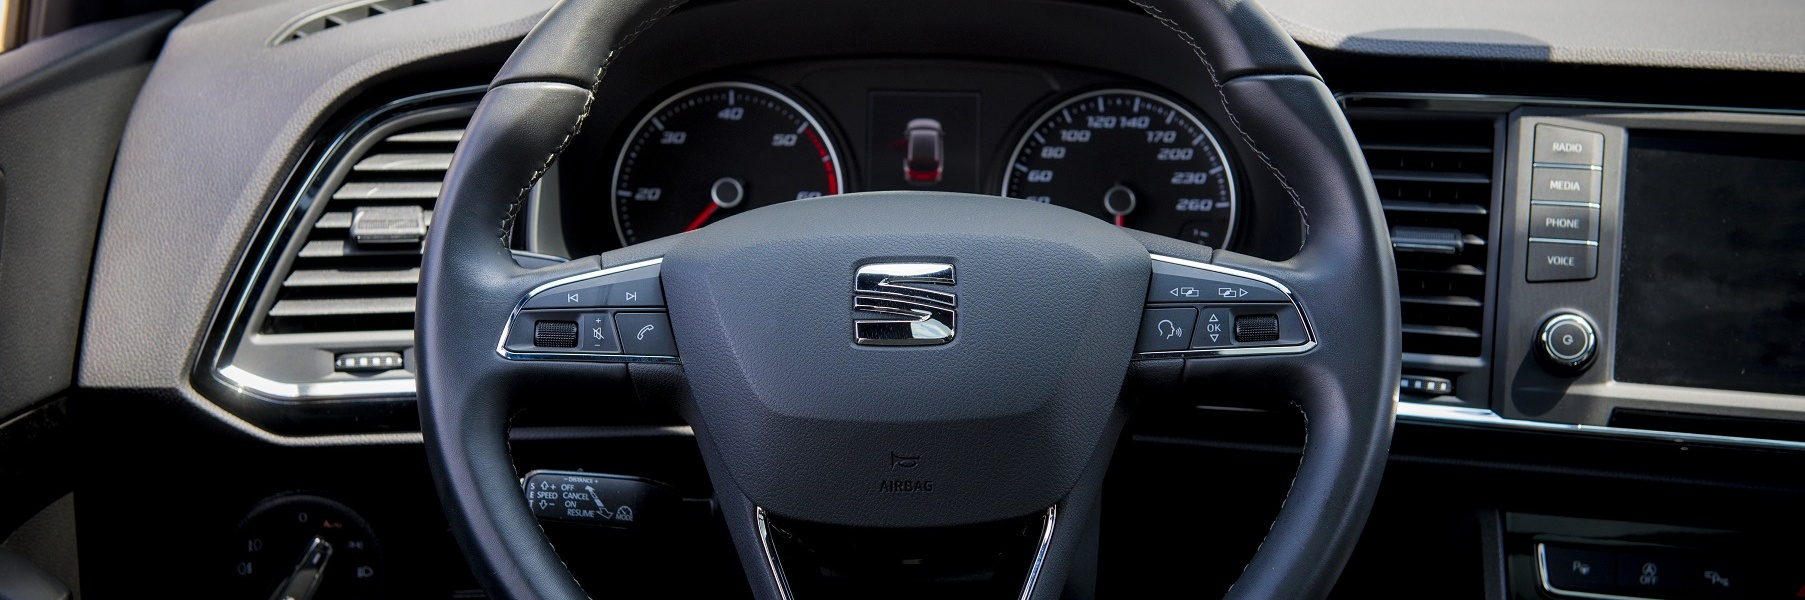 Today-SEAT-Ateca-steering-wheel.jpg